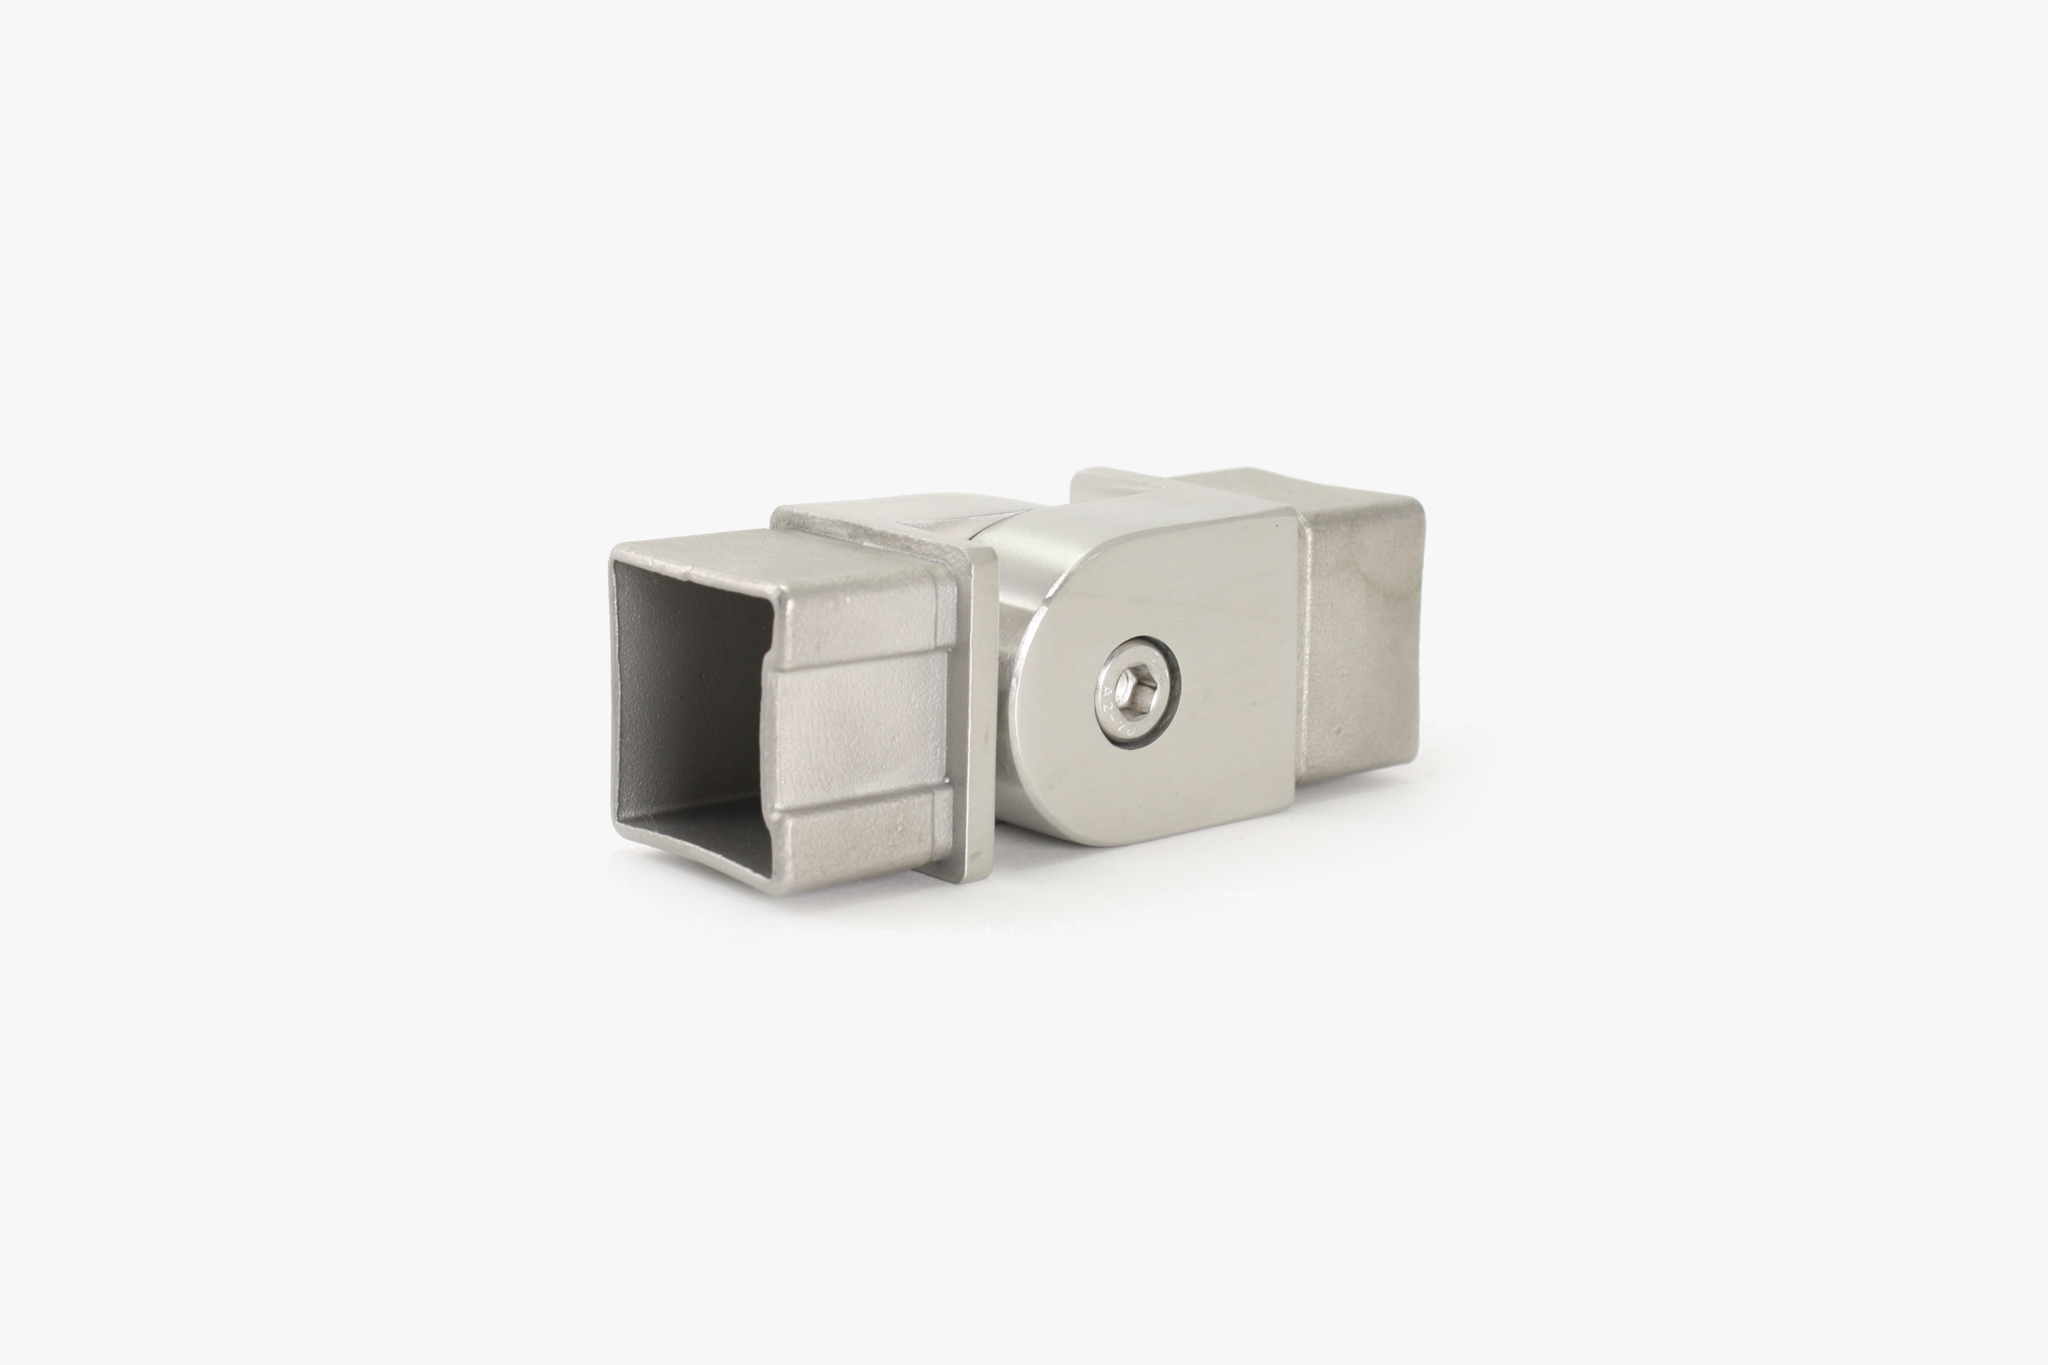 Adjustable elbow for square tube - Brushed stainless steel